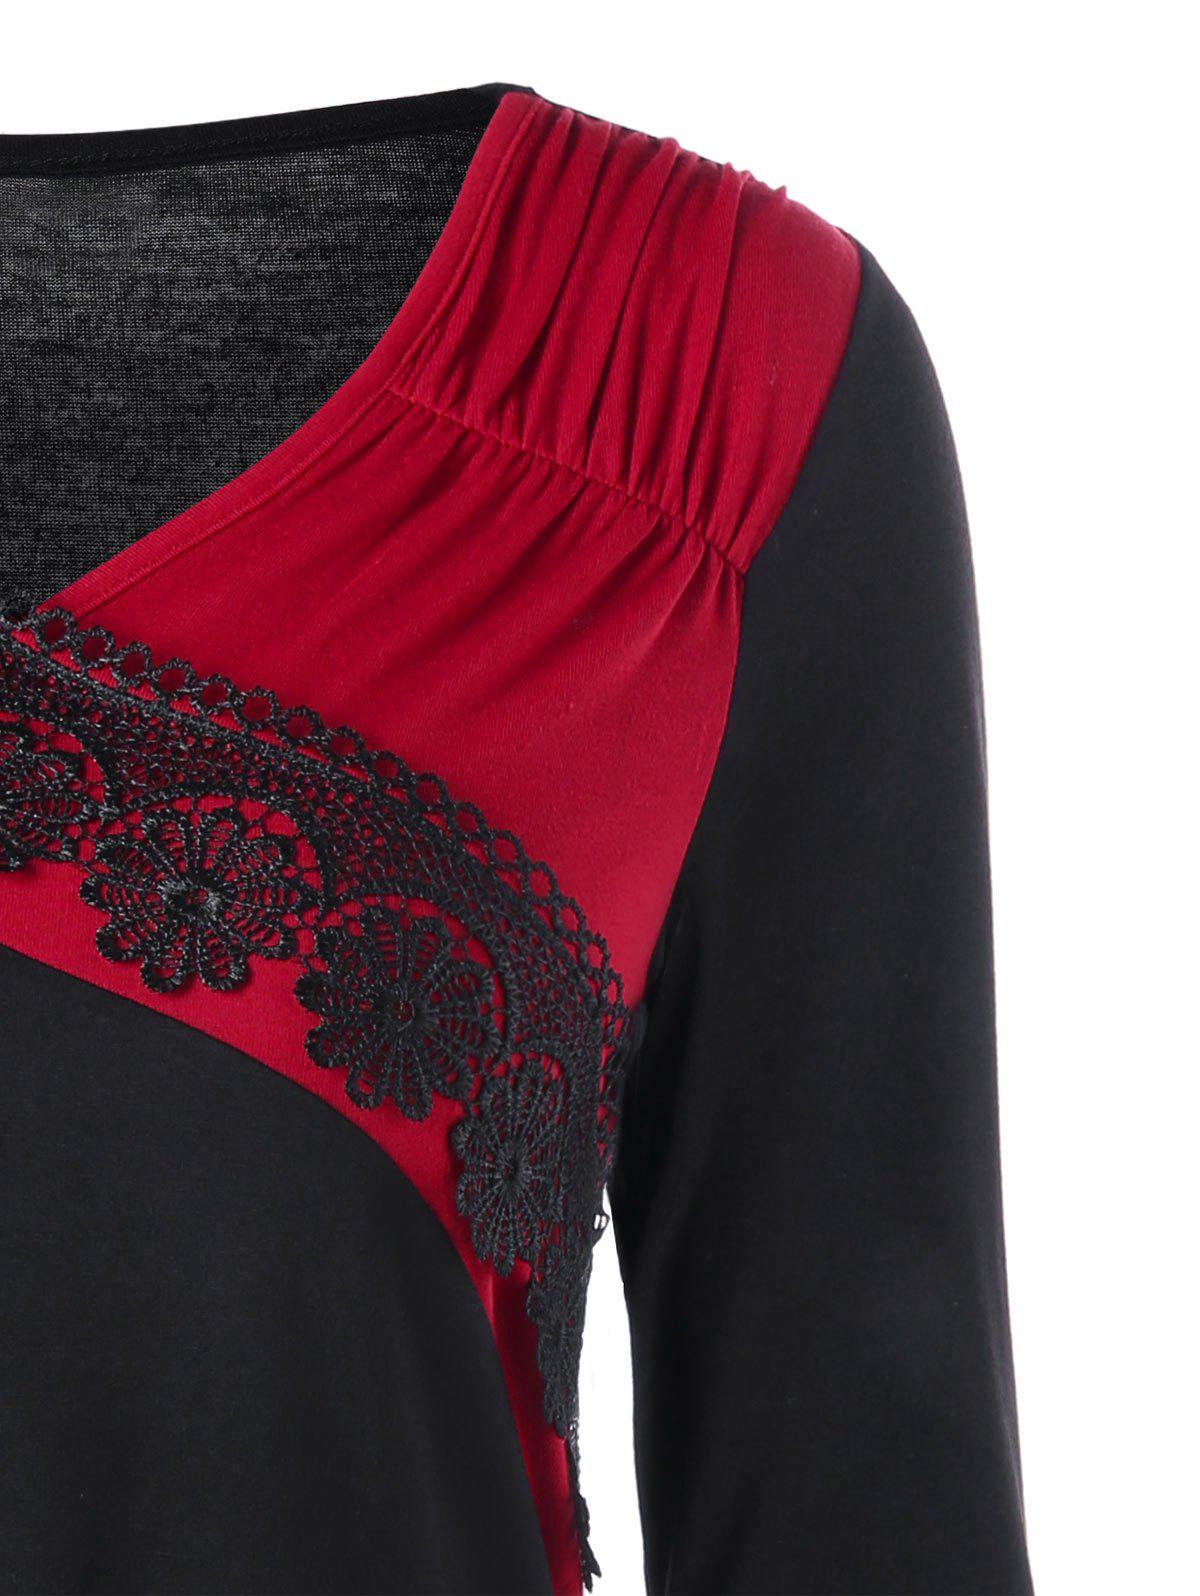 Two Tone Lace Trim Asymmetric Top - RED XL